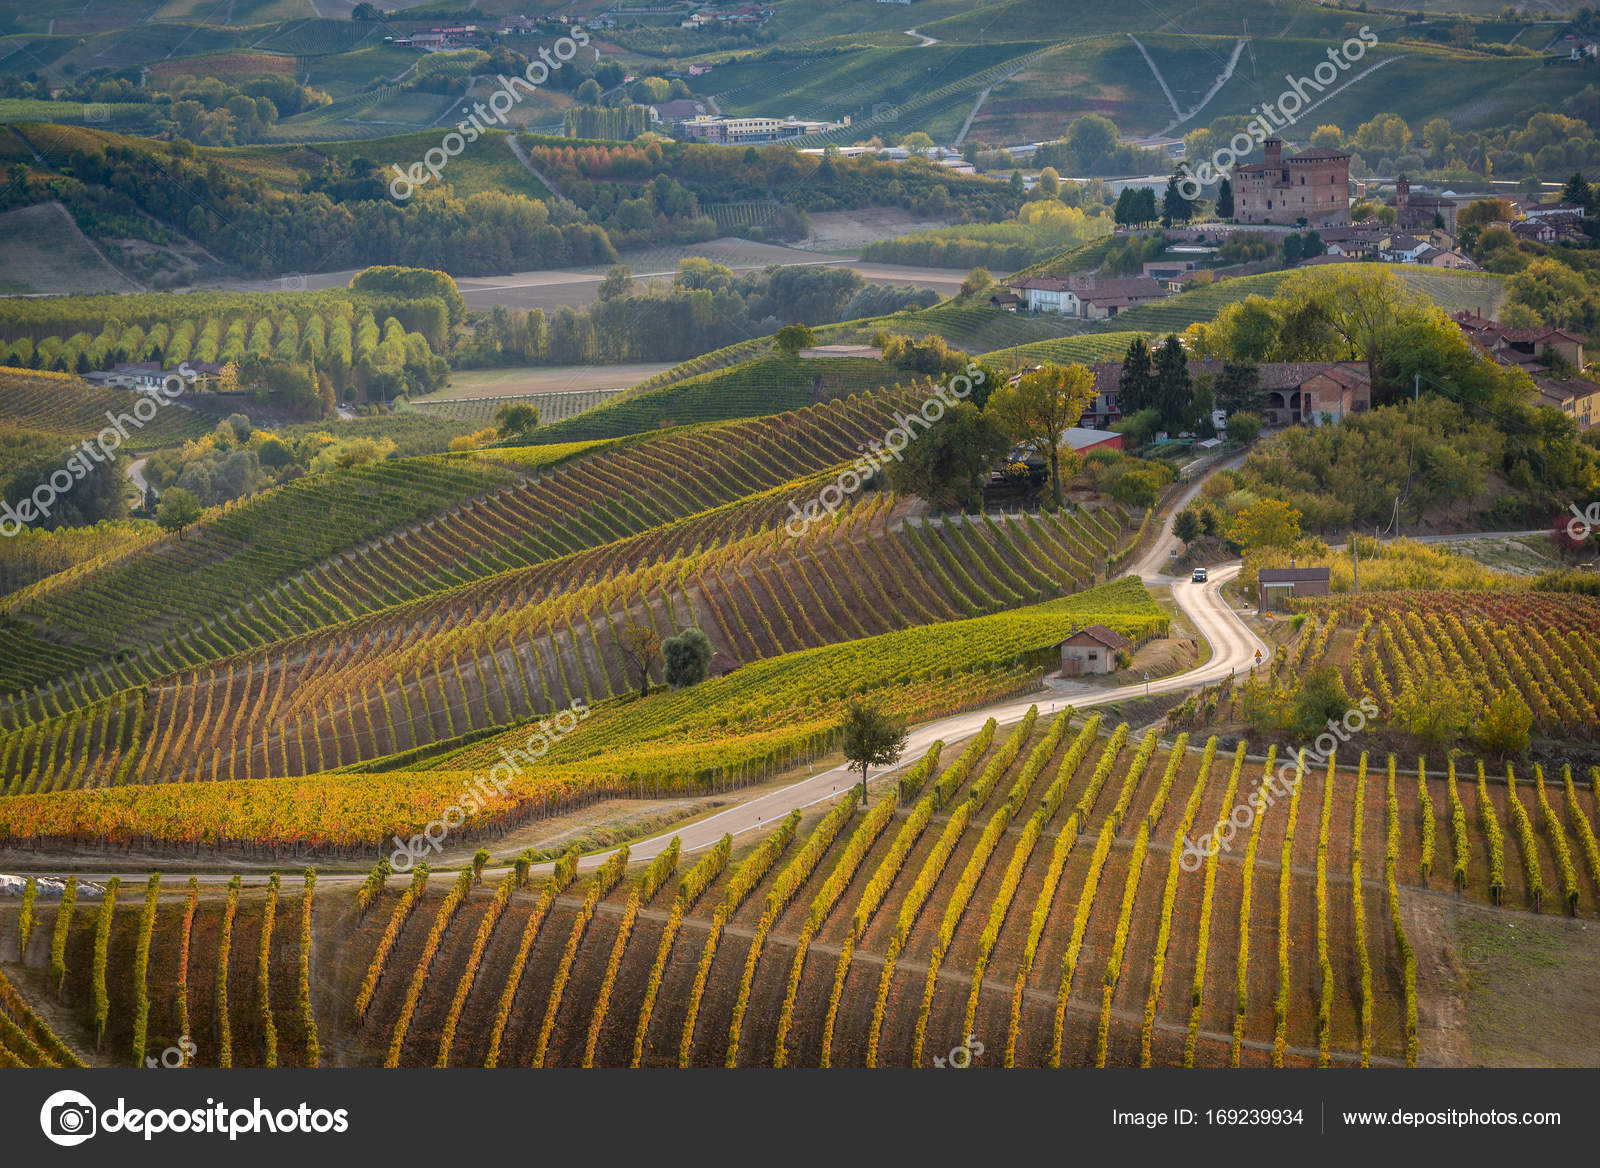 Vineyards in langhe region of northern italy in autumn with